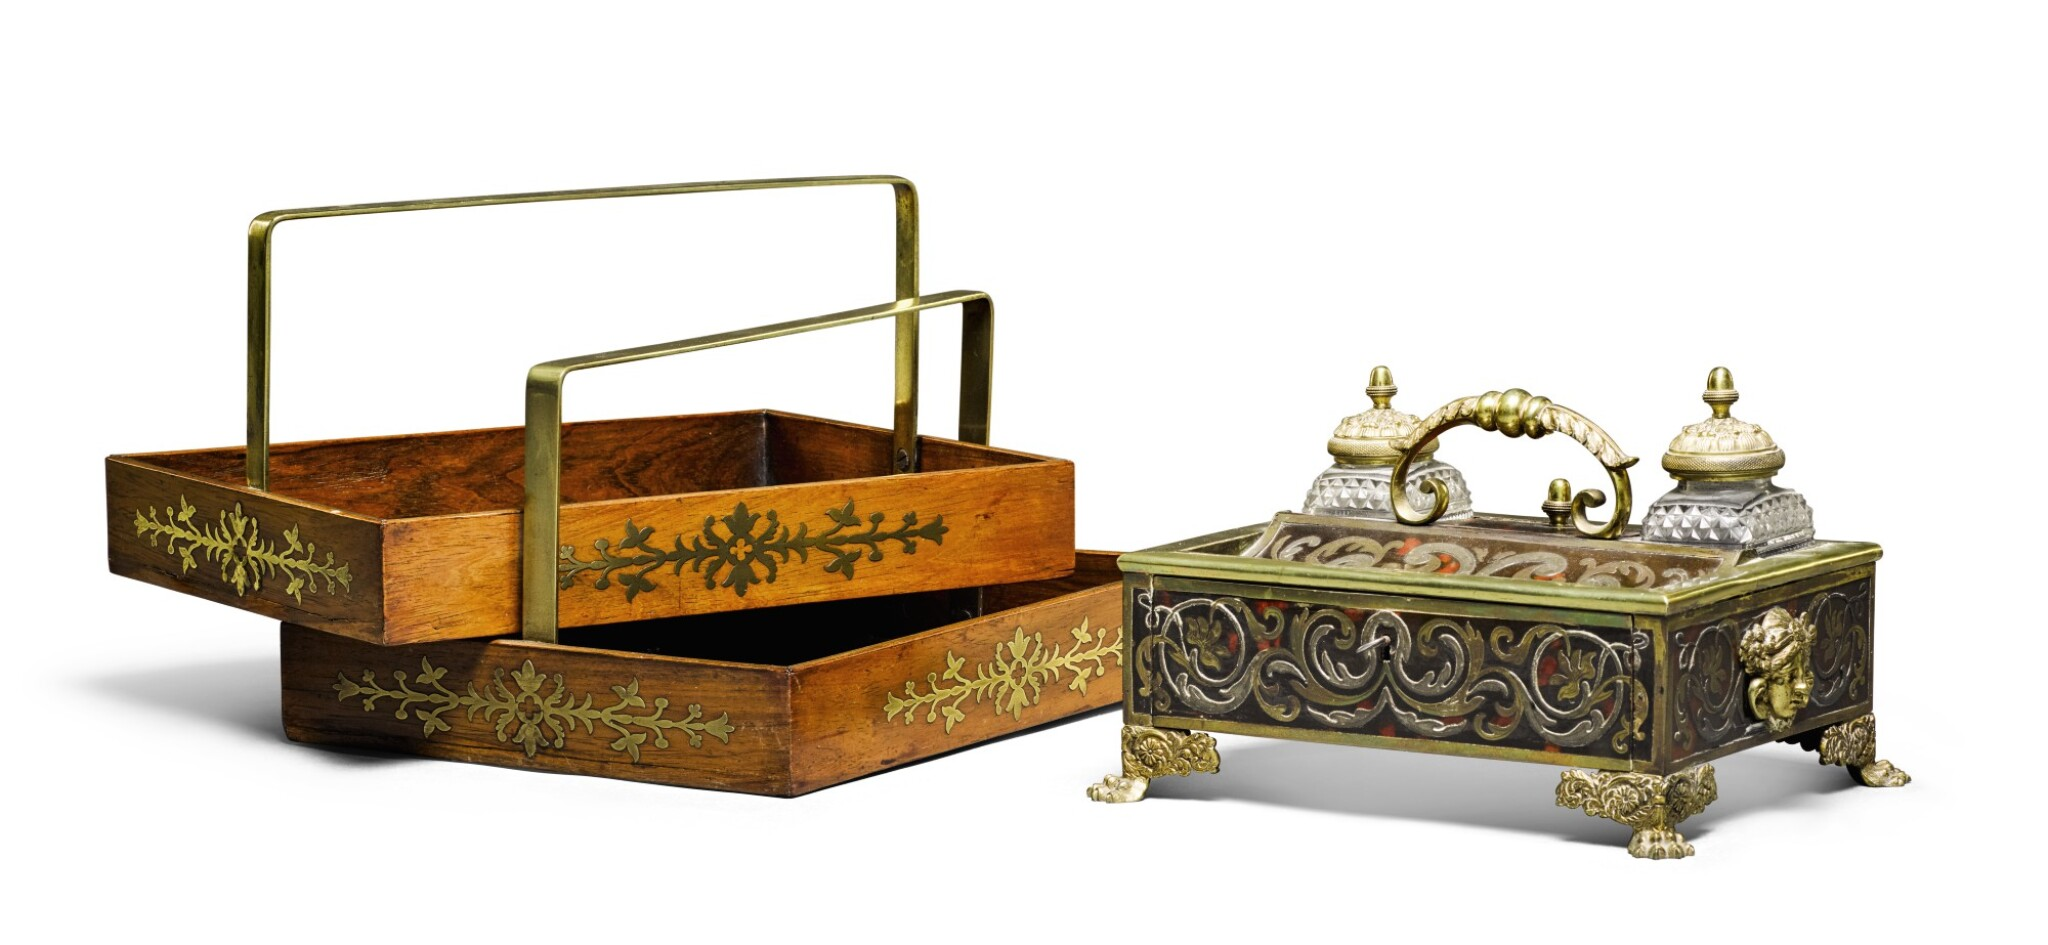 A REGENCY BRASS AND PEWTER INLAID TORTOISESHELL INKSTAND, CIRCA 1820, ATTRIBUTED TO WELLS & CO.